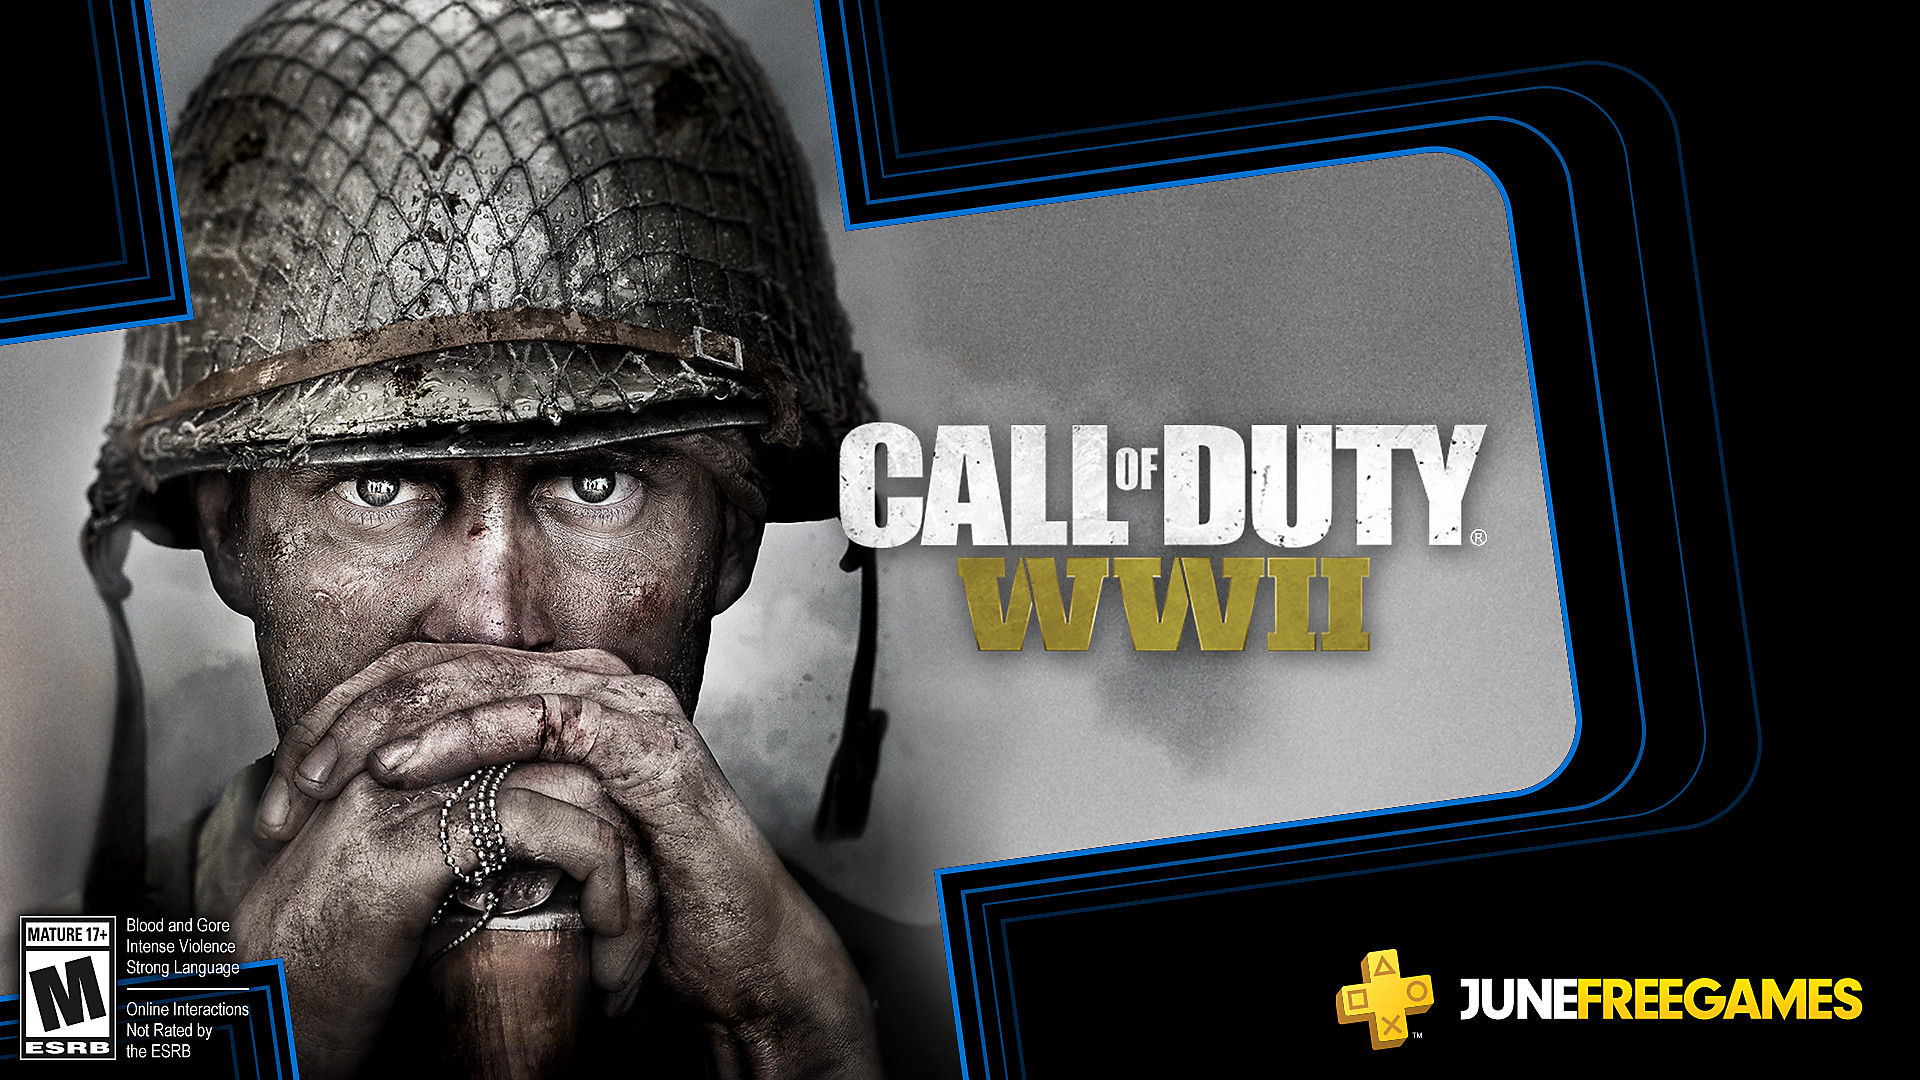 Click here to get Call of Duty: WWII free from the PlayStation Store for PlayStation Plus members